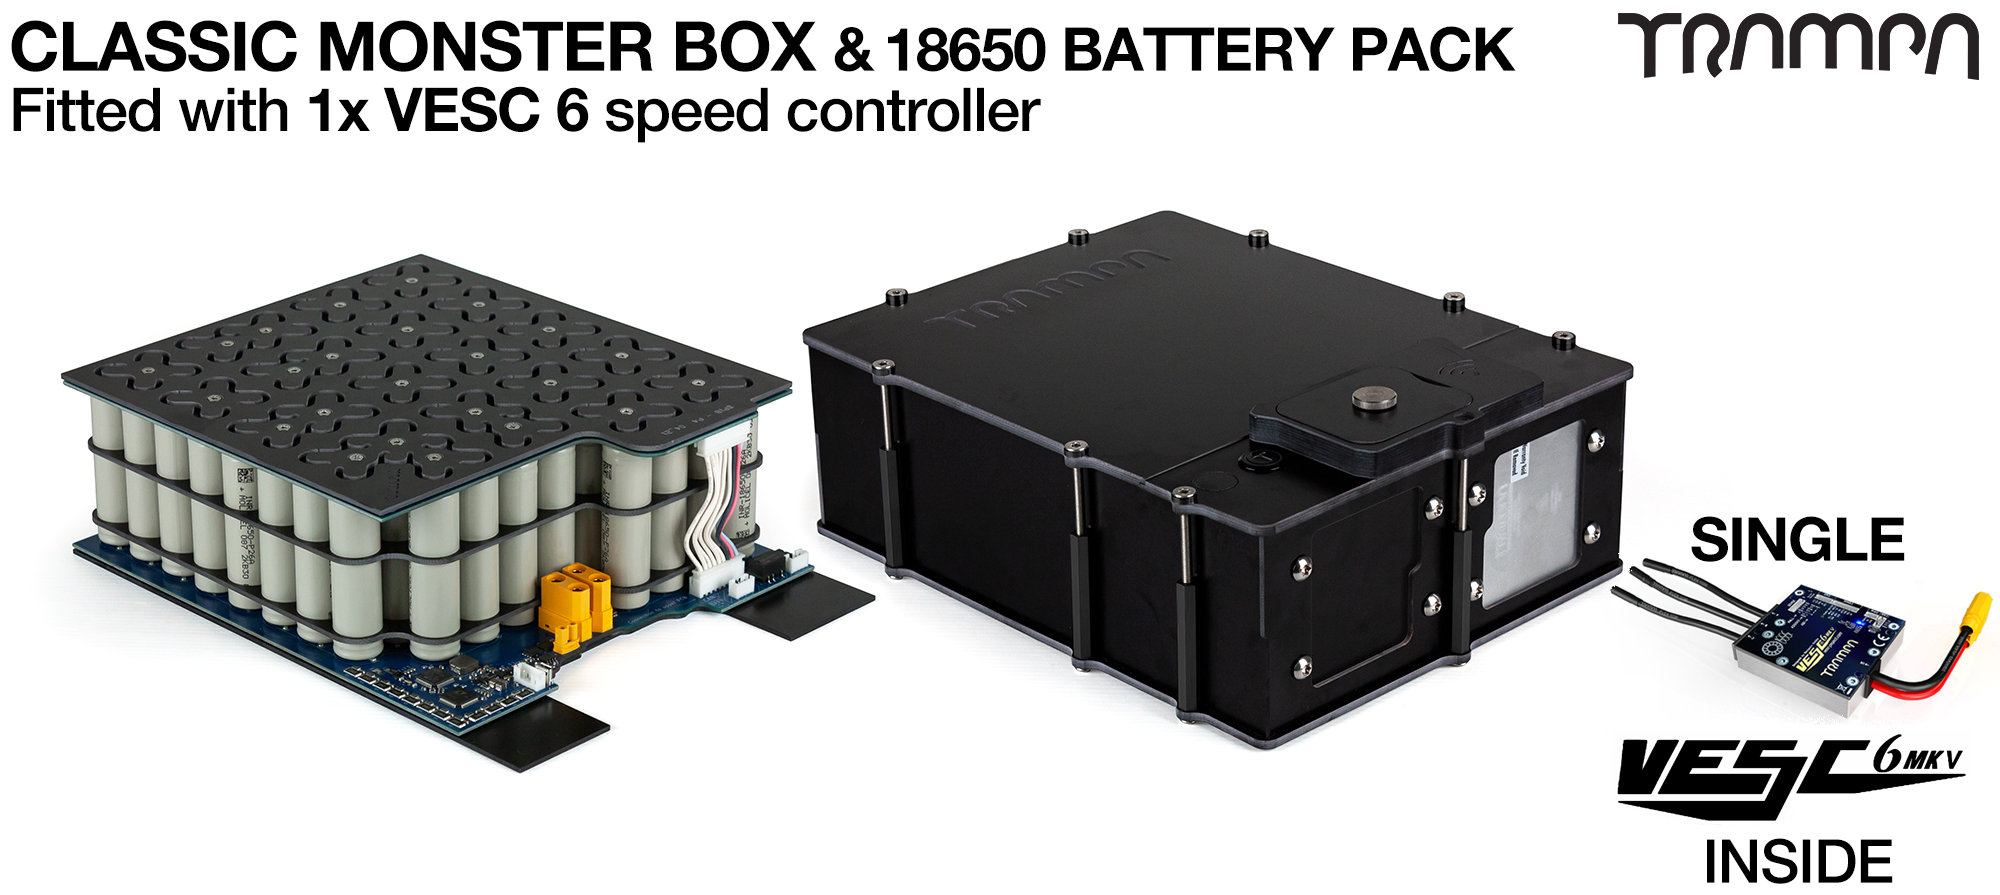 MONSTER Box MkIV - with 18650 PCB Pack, 1x VESC 6 with NRF & 84x 18650 cells 12s7p 21Ah - PCB based Battery Pack with Integrated Battery Management System (BMS) - UK CUSTOMERS ONLY